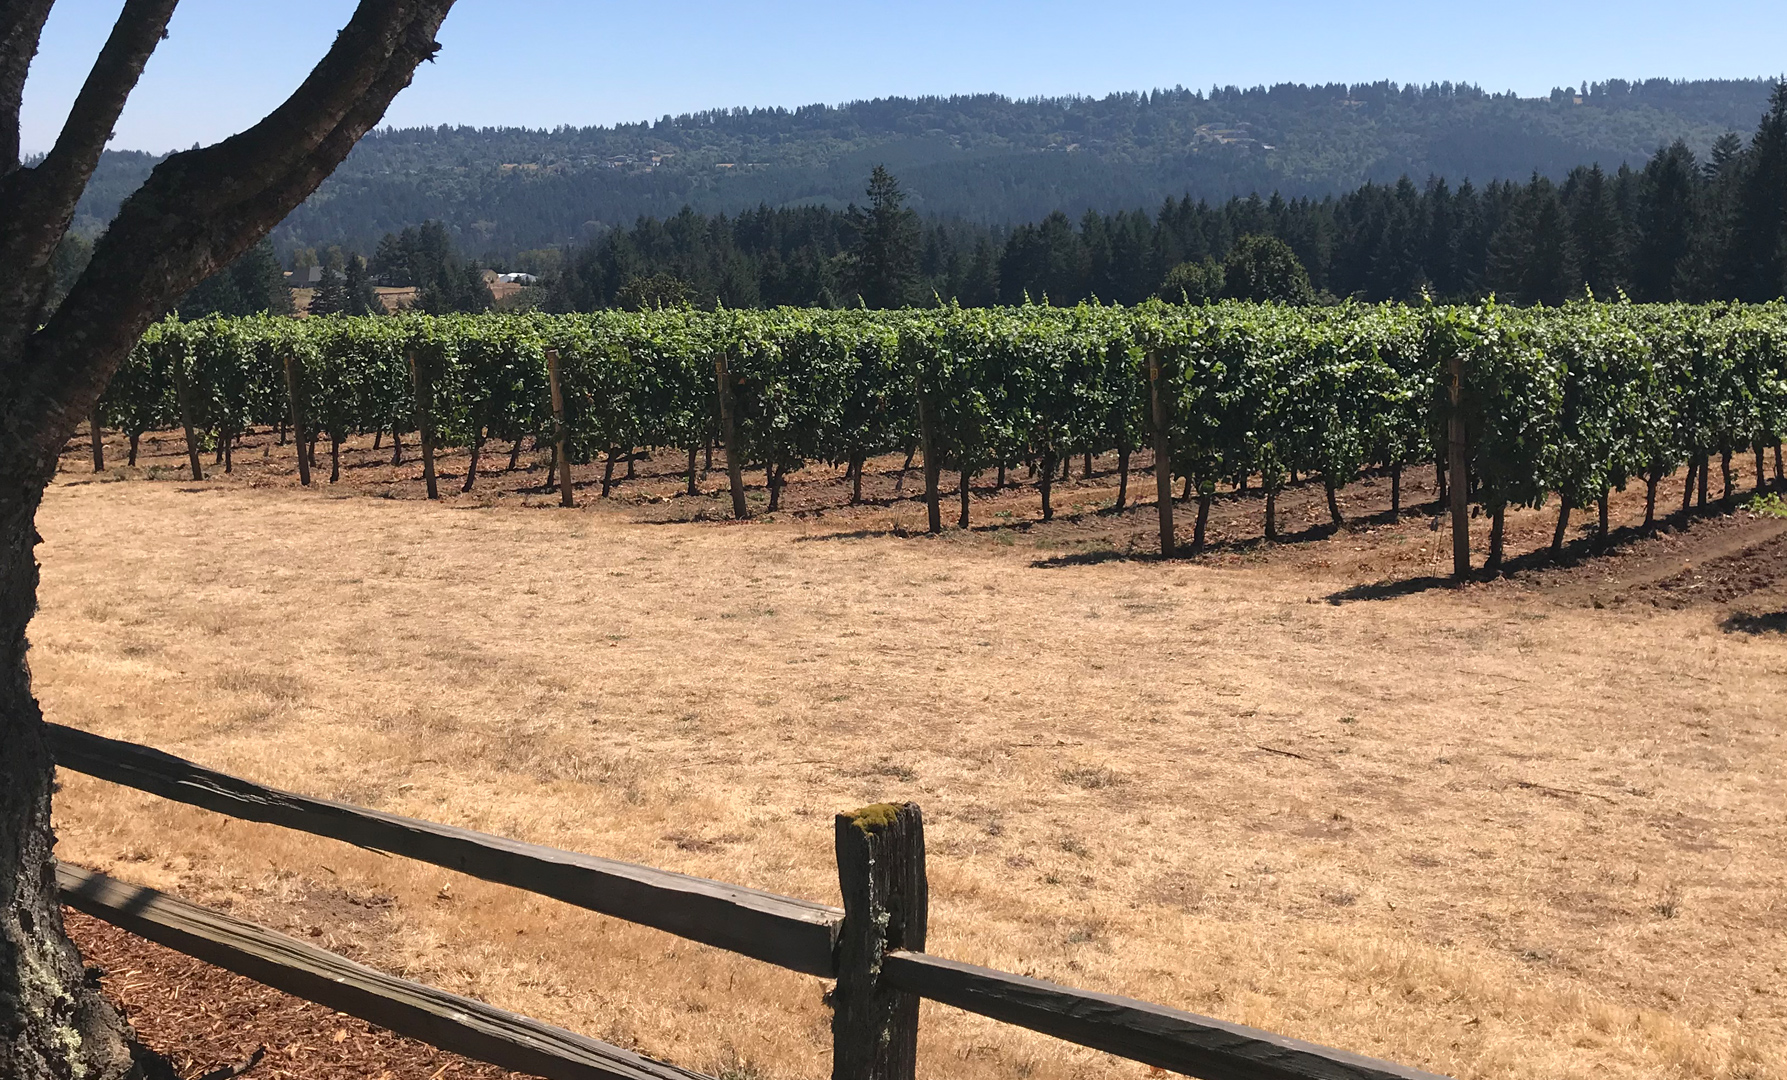 Portland Wine Country: Harvest in Willamette Valley